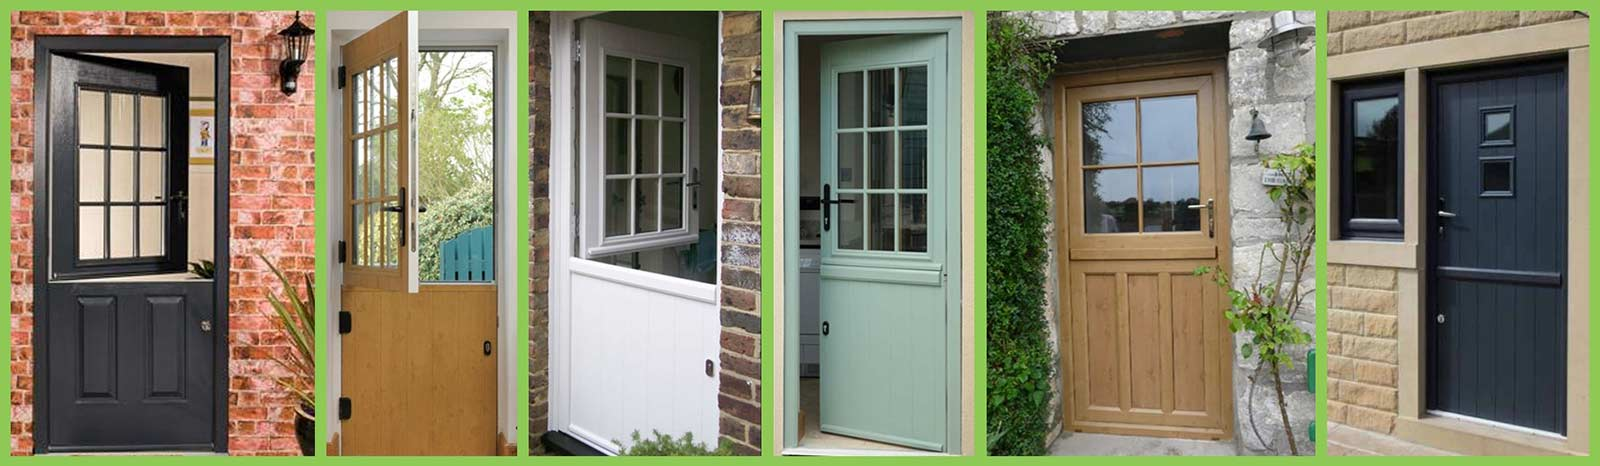 upvc stable doors somerset